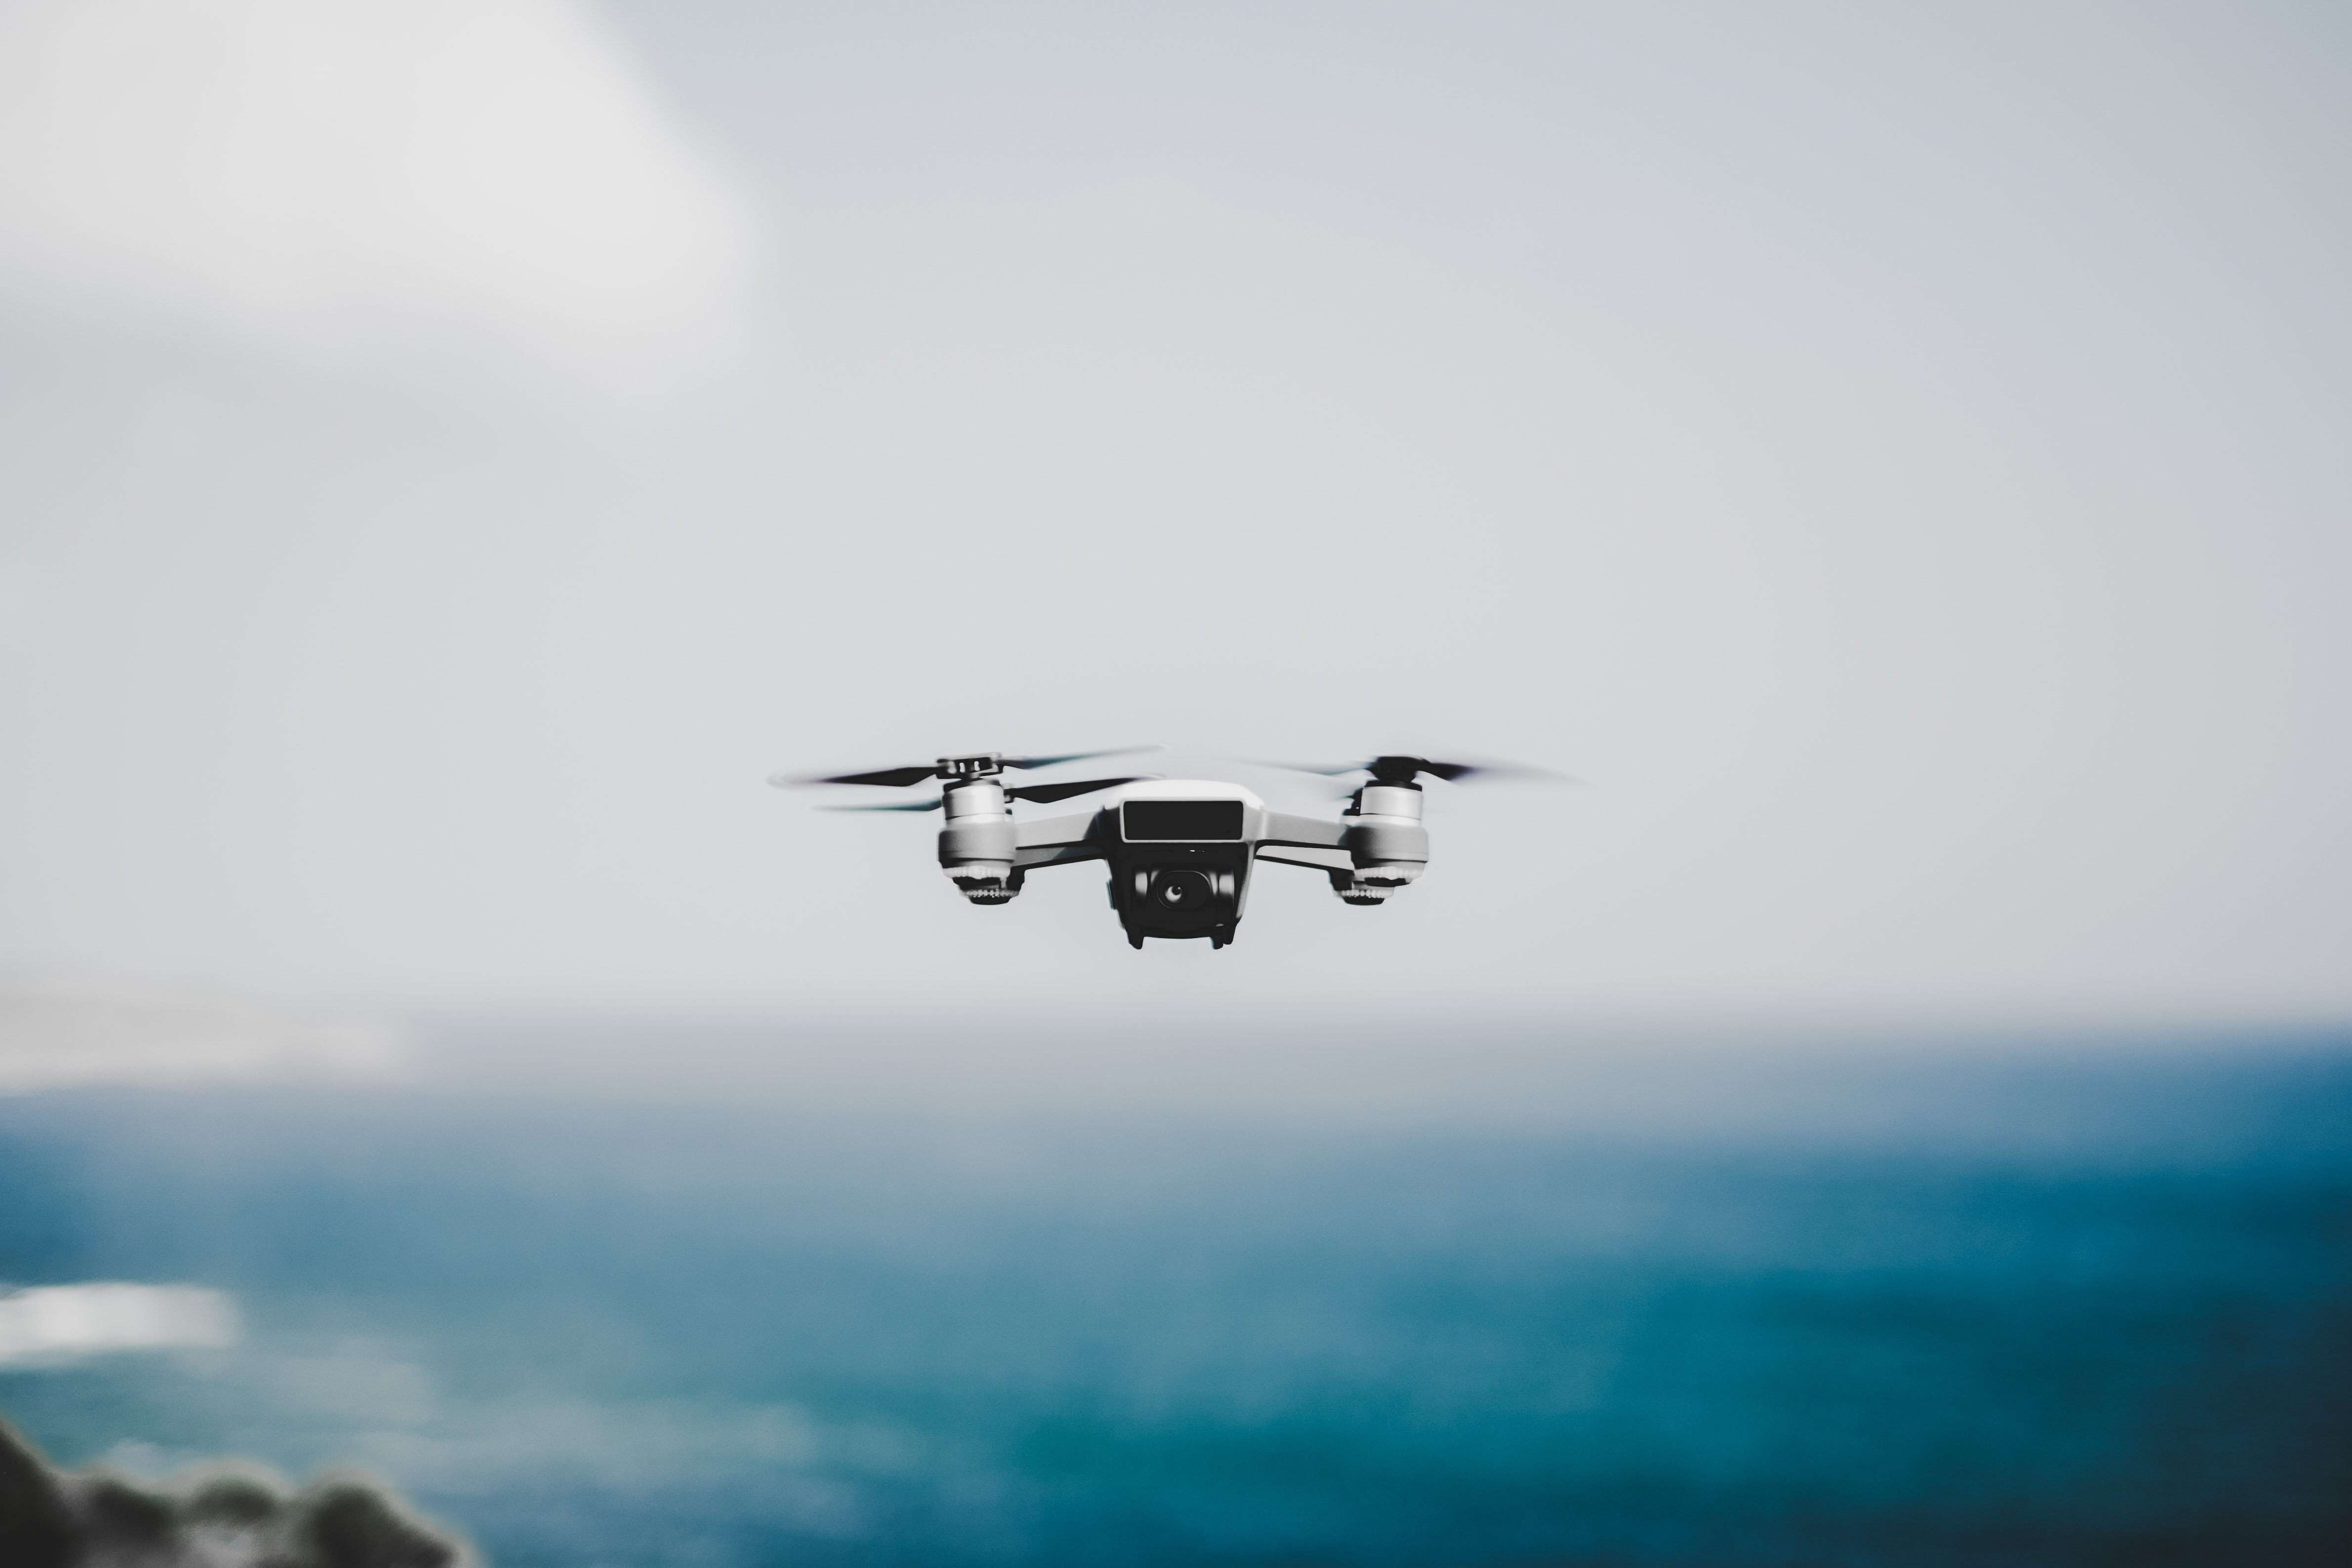 white quadcopter hovering near body of water